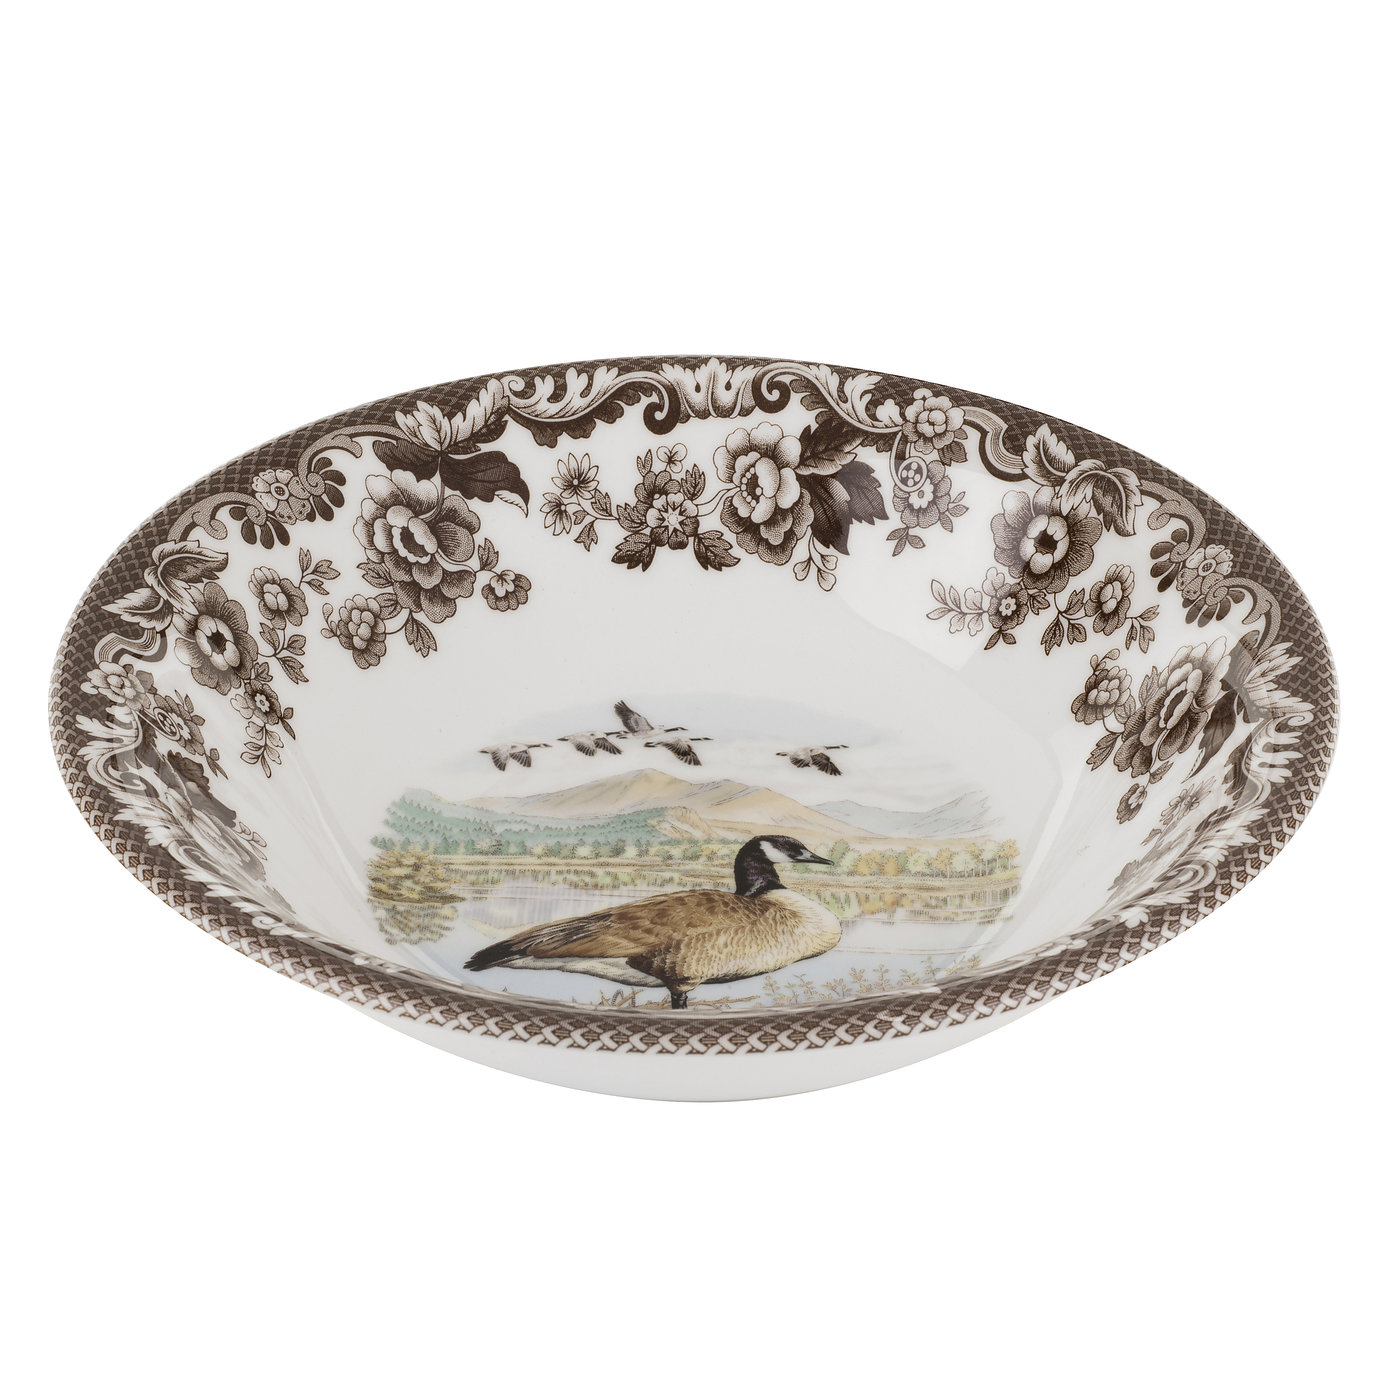 Spode Woodland Ascot Cereal Bowl 8 Inch (Canada Goose) image number 0